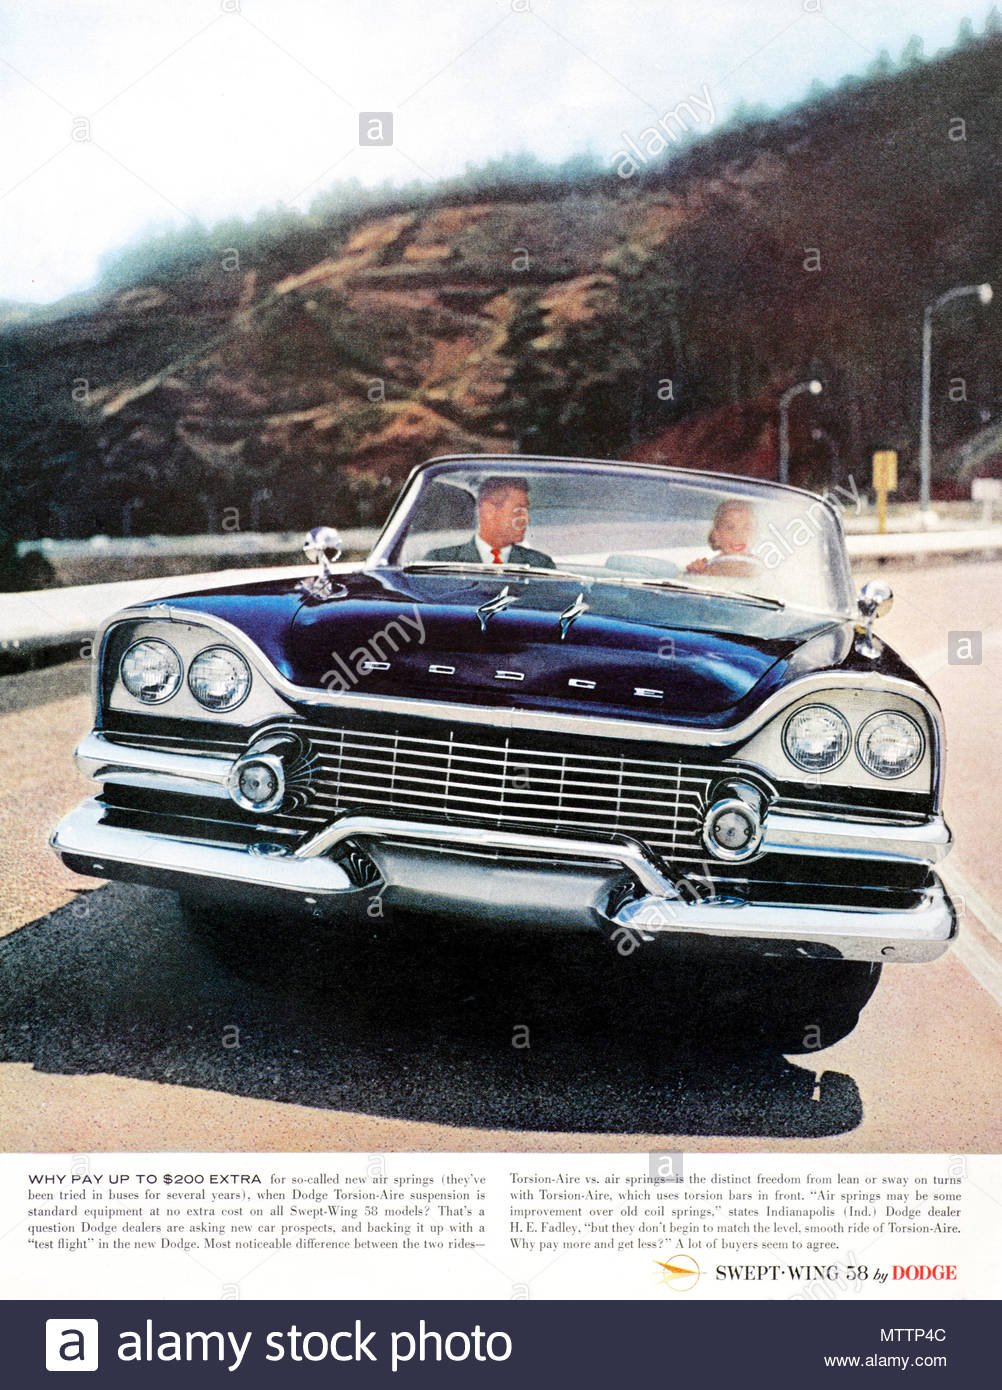 Vintage advertising for the Dodge Swept-Wing Car 1958 - Stock Image